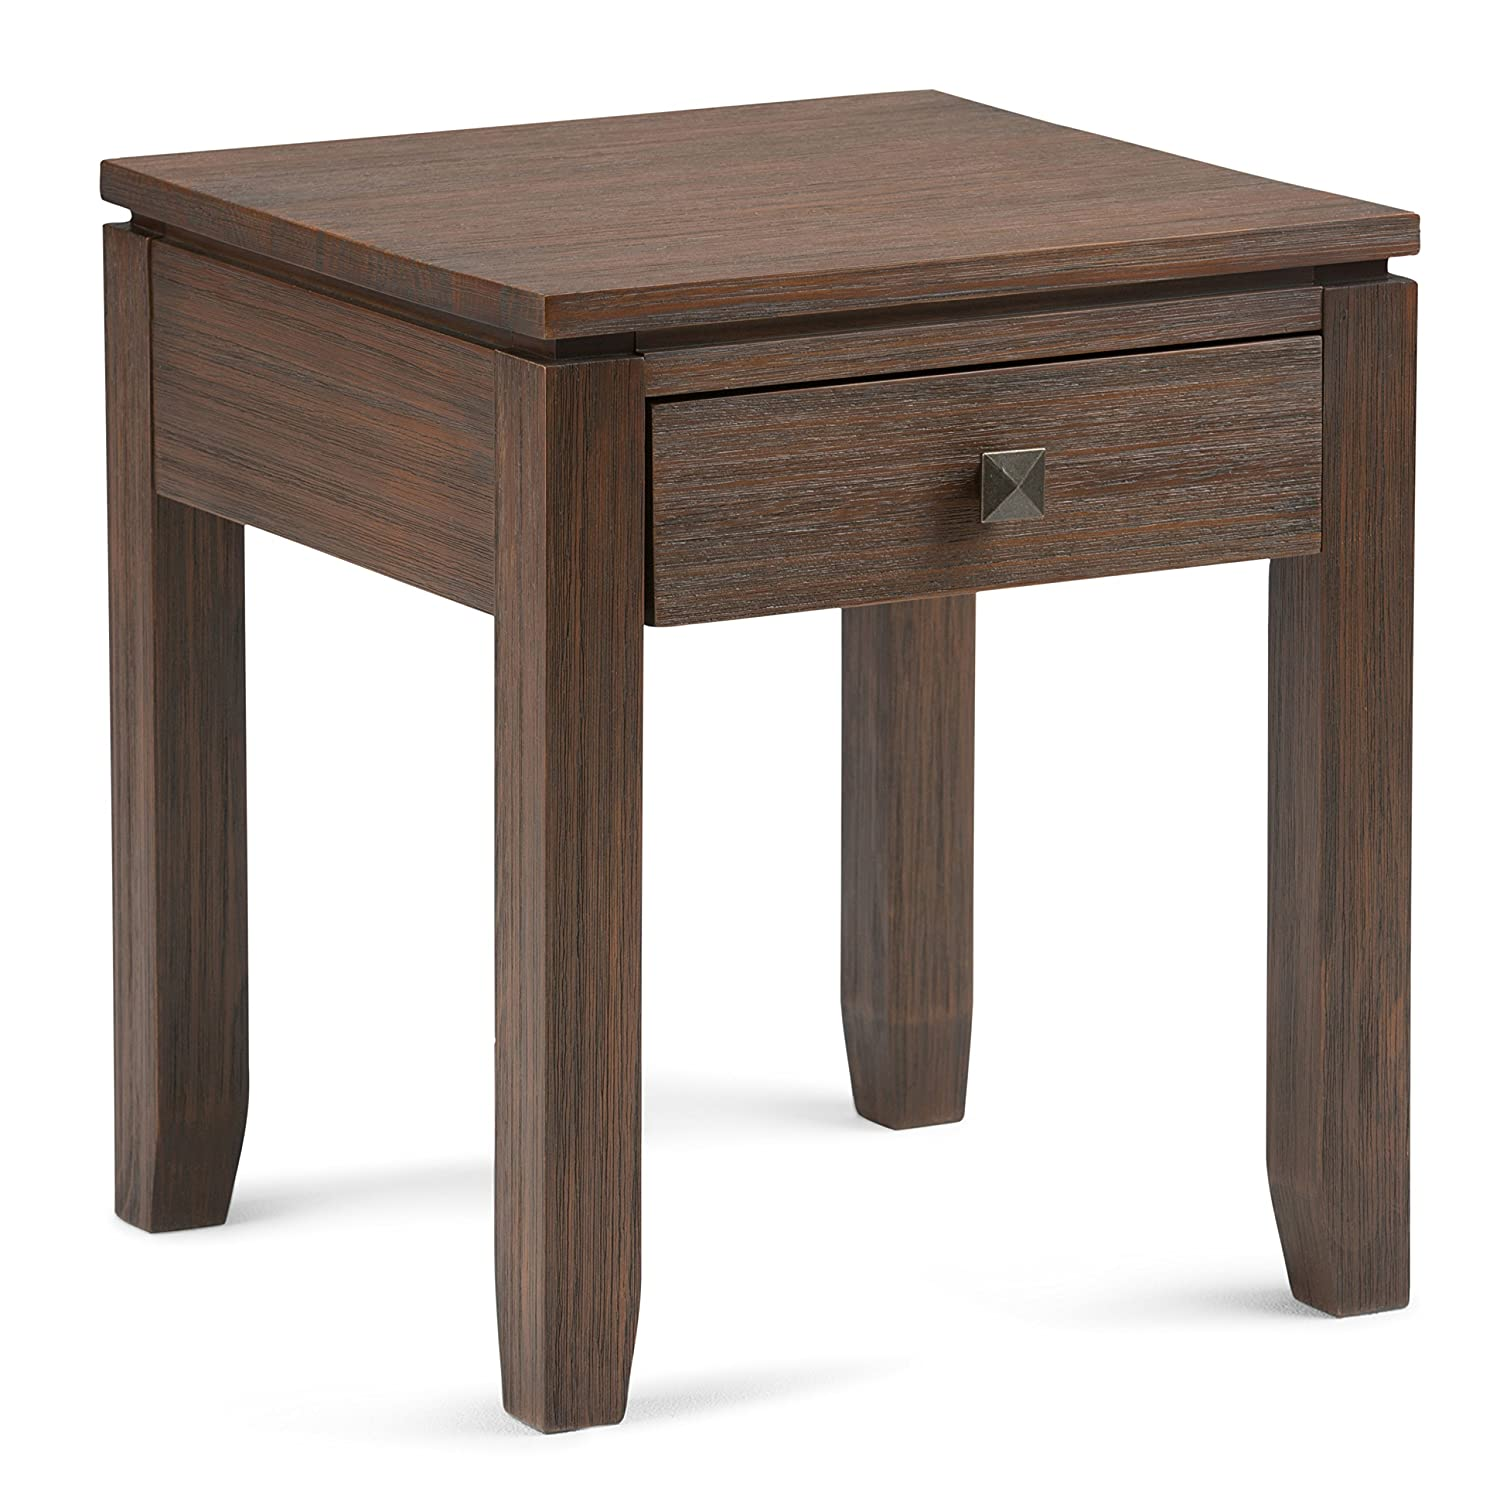 Simpli Home INT-AXCCOS-END-FB Cosmopolitan Solid Wood 18 inch Wide Square Contemporary End Side Table in Farmhouse Brown